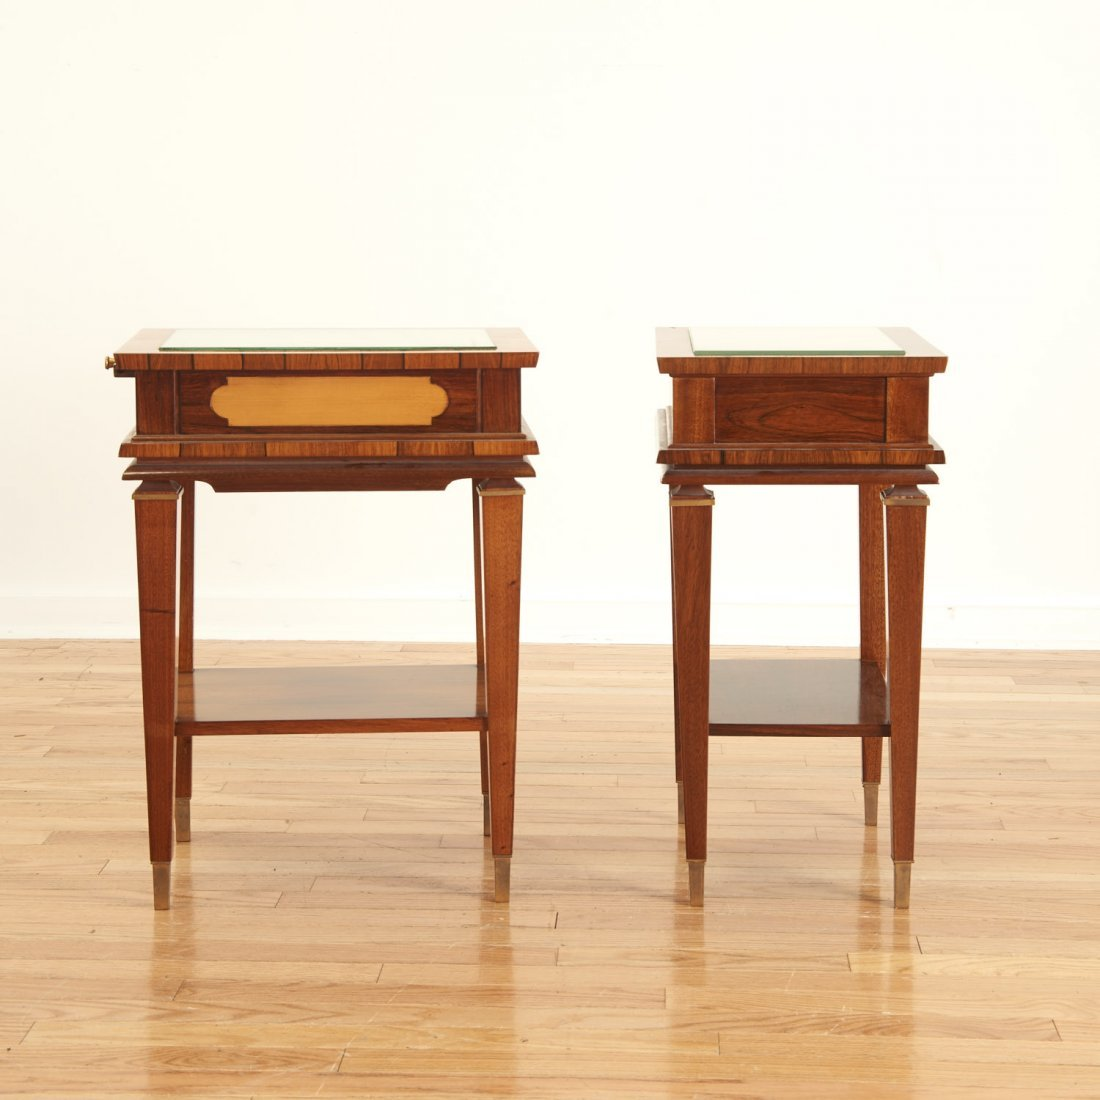 Manner Maxime Old near pair side tables - 6